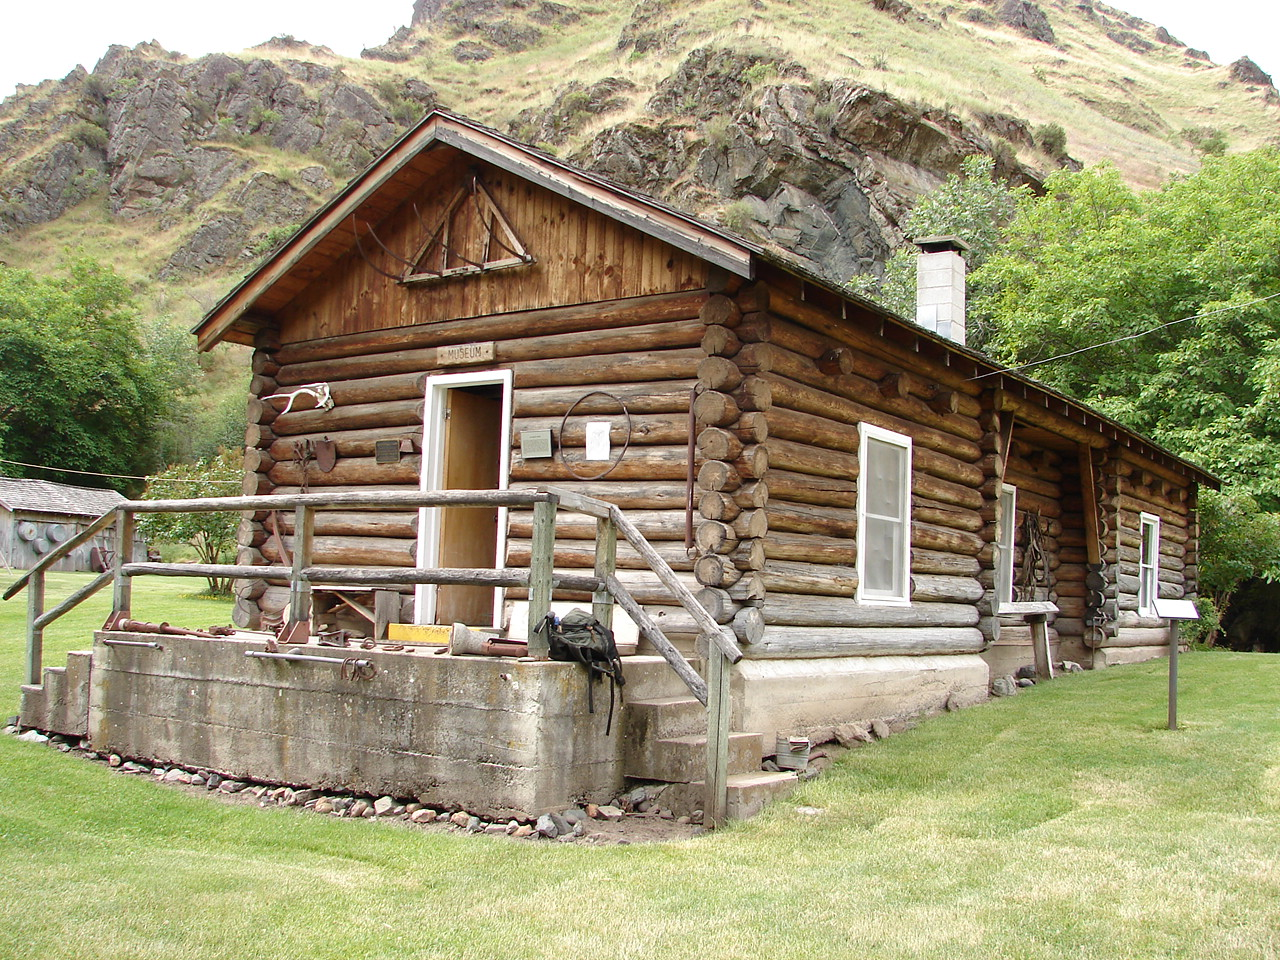 Hells Canyon National Recreation Area-Snake River - Kirkwood Ranch